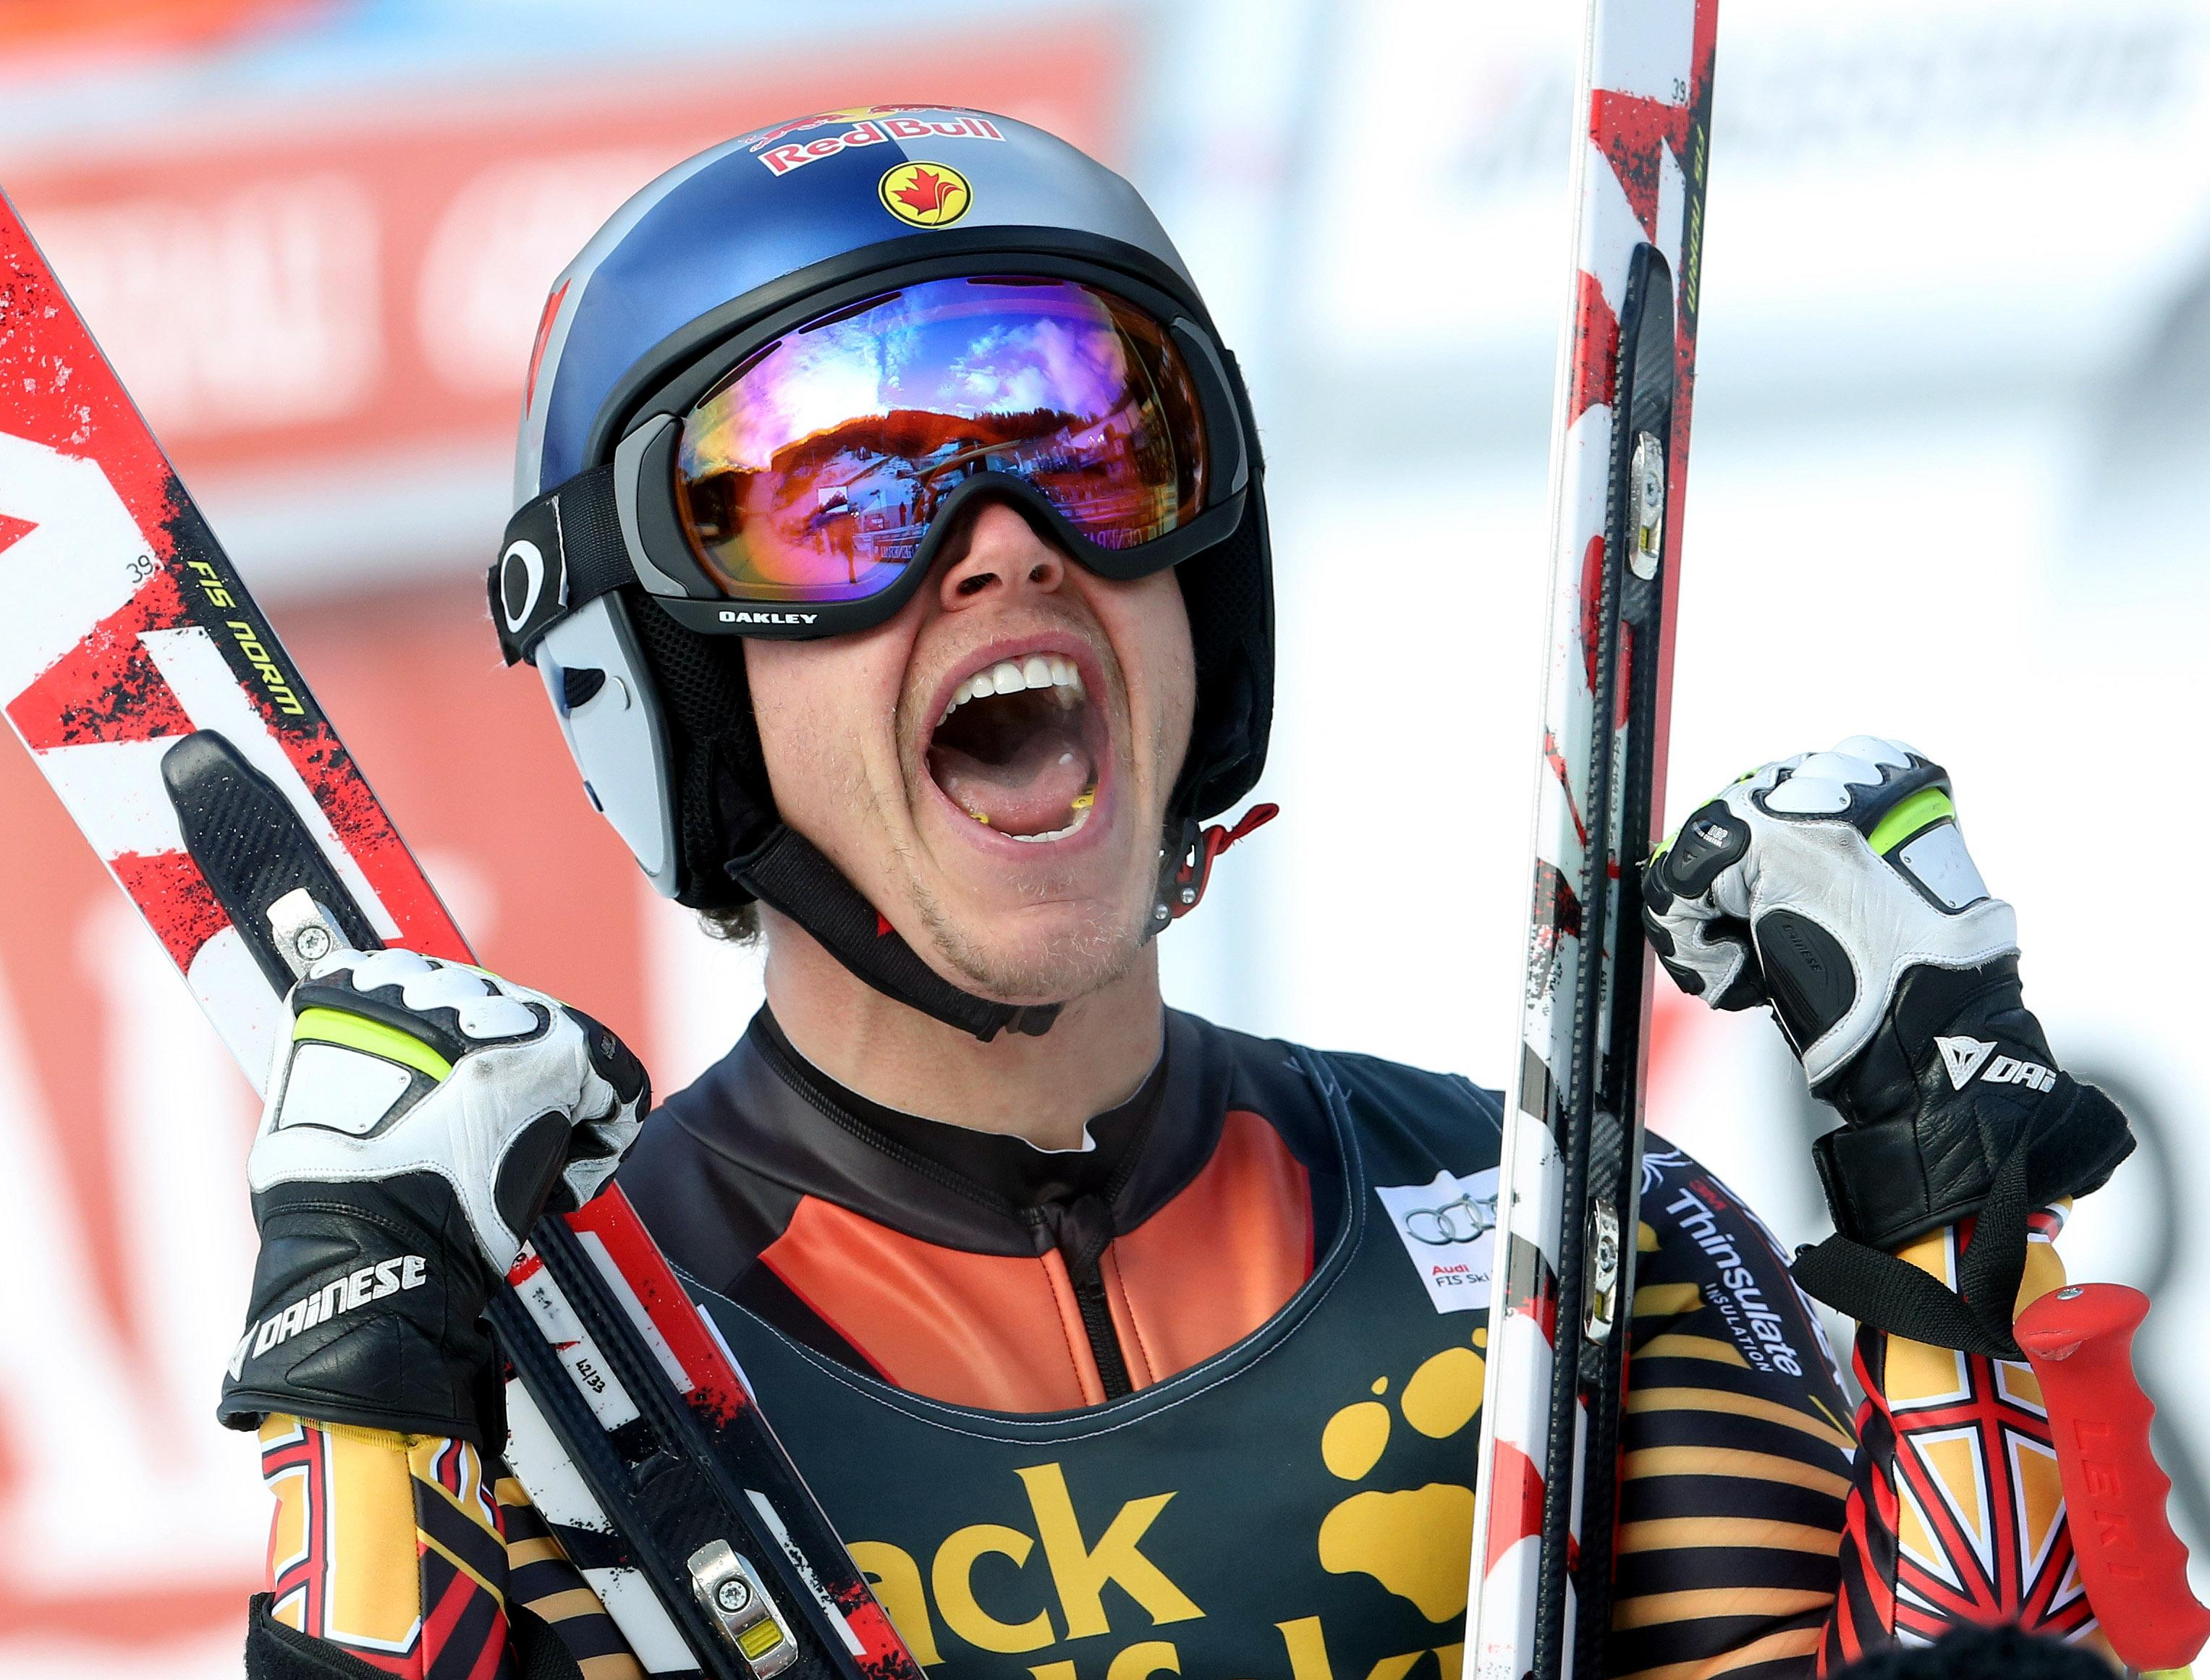 Canada's Erik Guay celebrates after winning an alpine ski, men's World Cup downhill, in Val Gardena, Italy, Saturday, Dec. 21, 2013. Canada's Erik Guay gained a measure of revenge by winning the prestigious Val Gardena downhill Saturday, a year after missing out on the victory because of changing weather. (AP Photo/Armando Trovati)